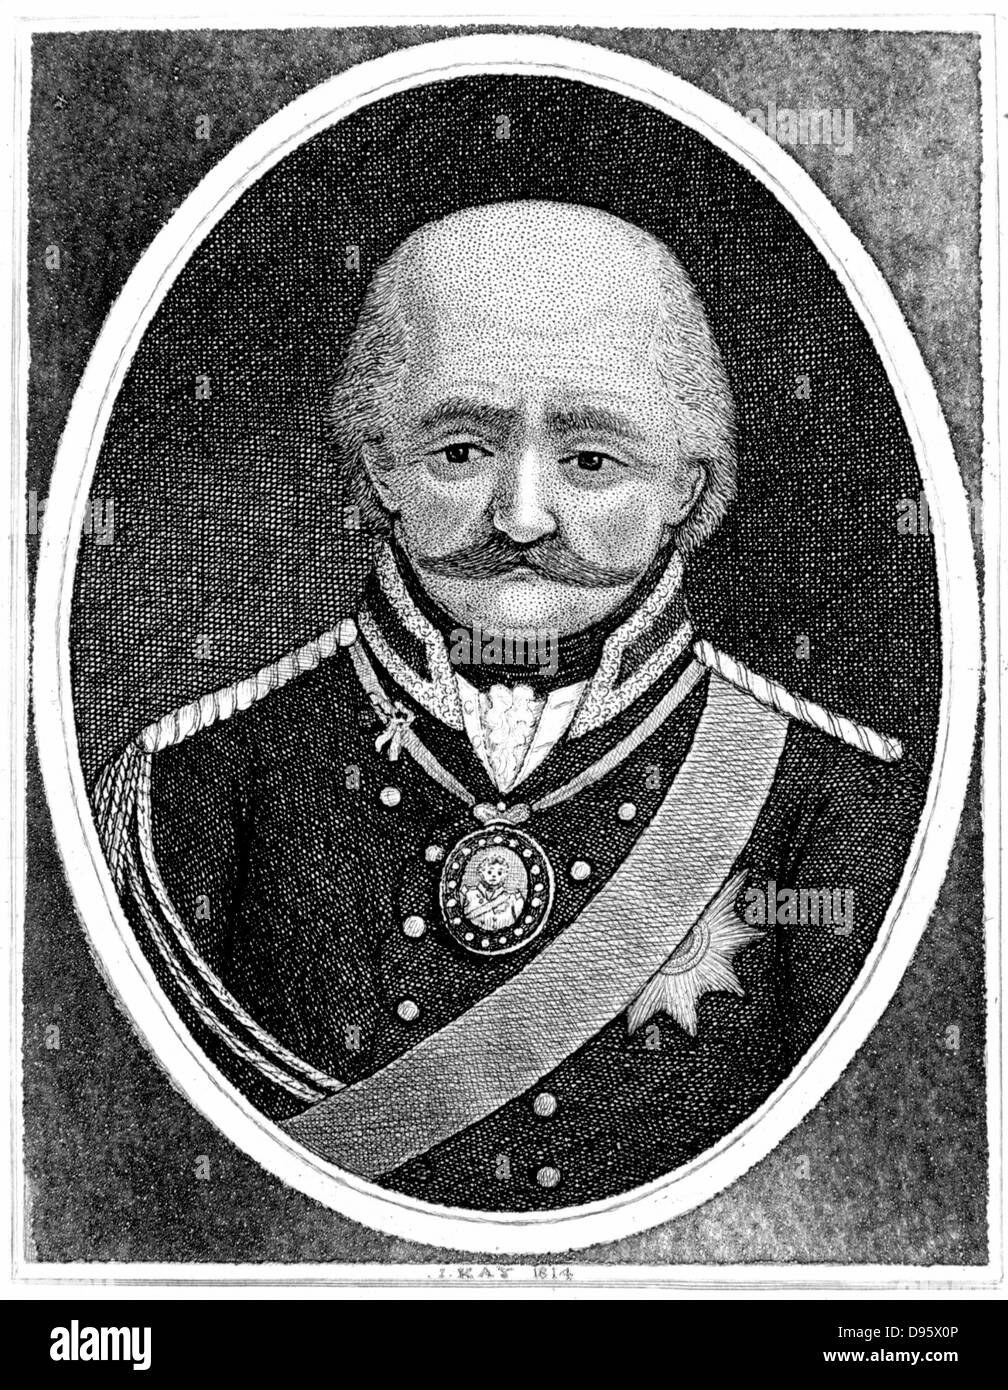 Gebbard Leberech Von Blucher (1742-1819) Prussian general. Important contribution to Wellington's victory at - Stock Image